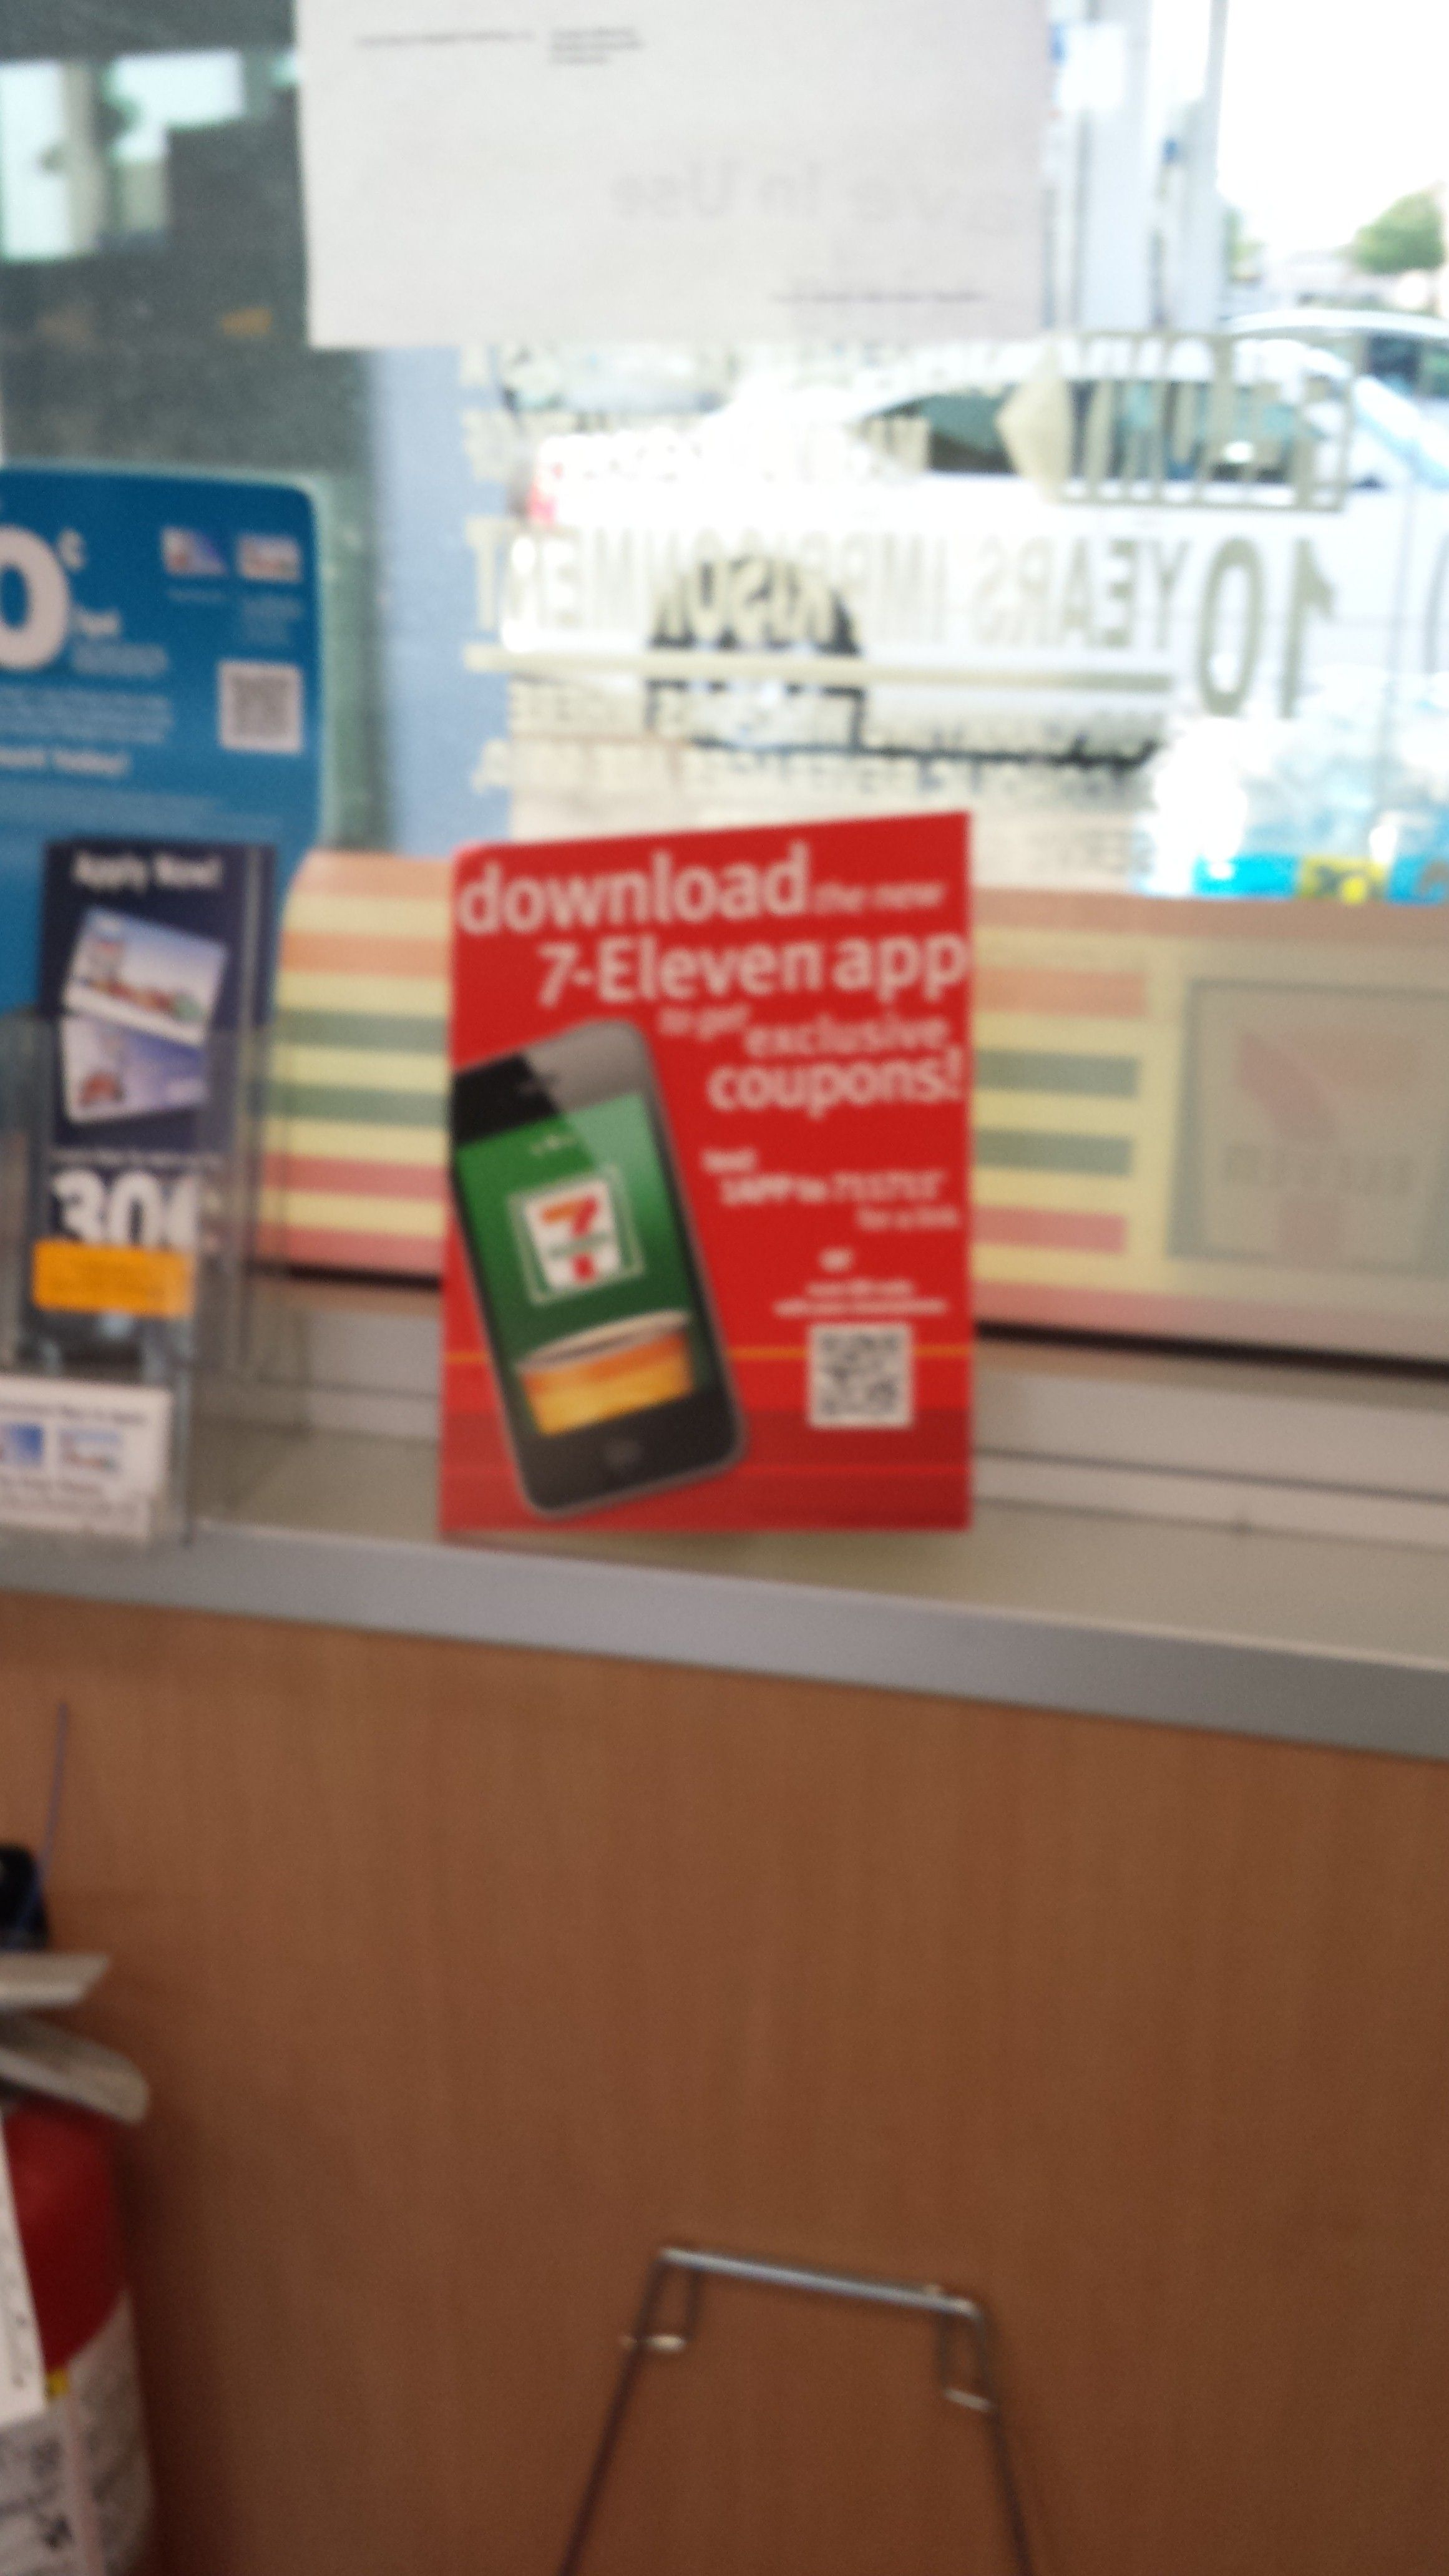 711 convenience stores are using this poster with a QR